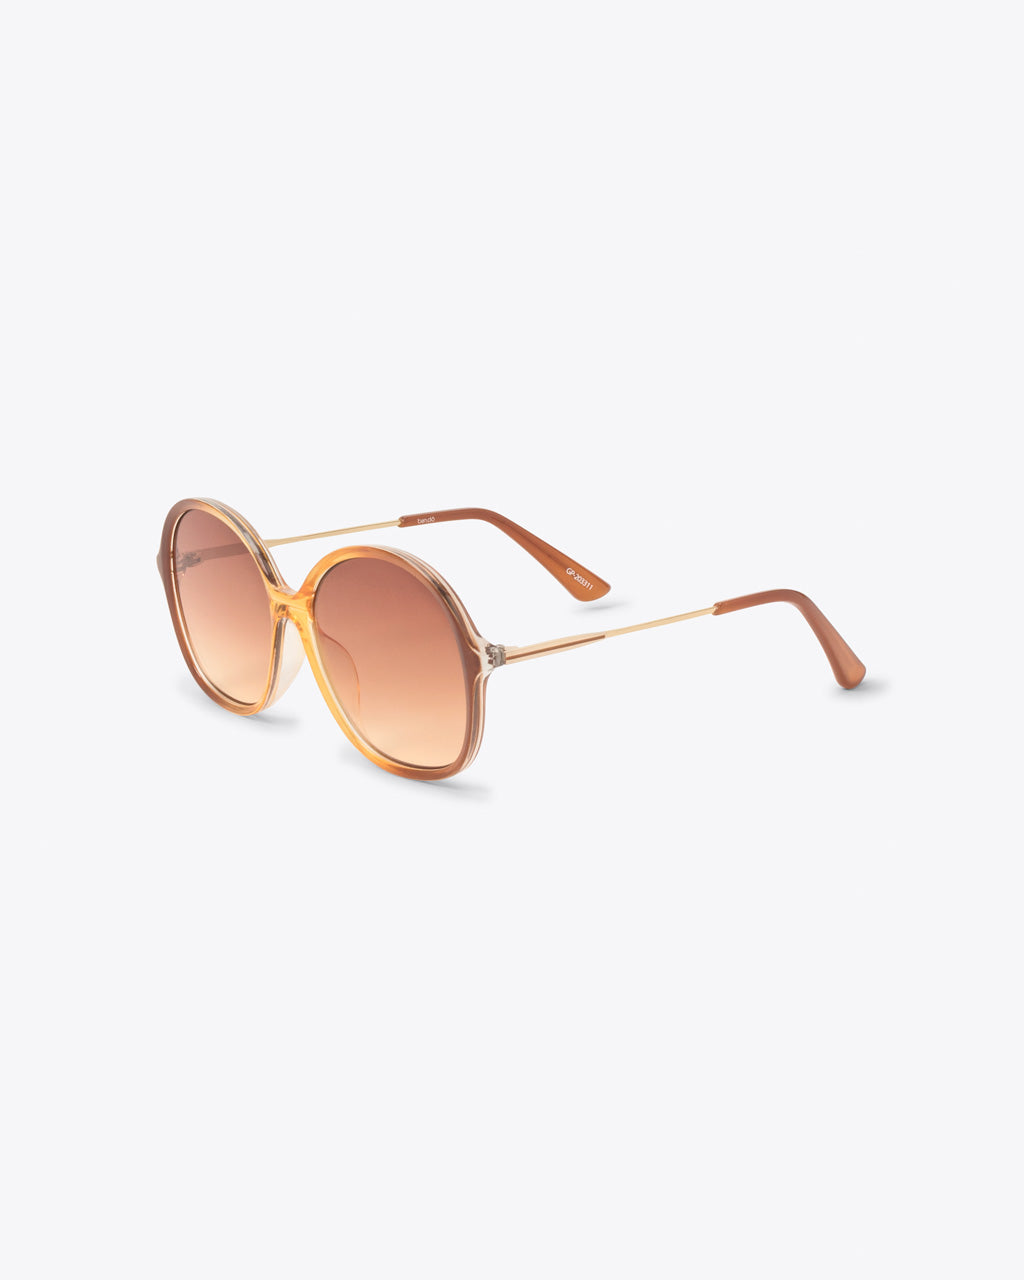 side view of metal stems on oversized vintage sunglasses